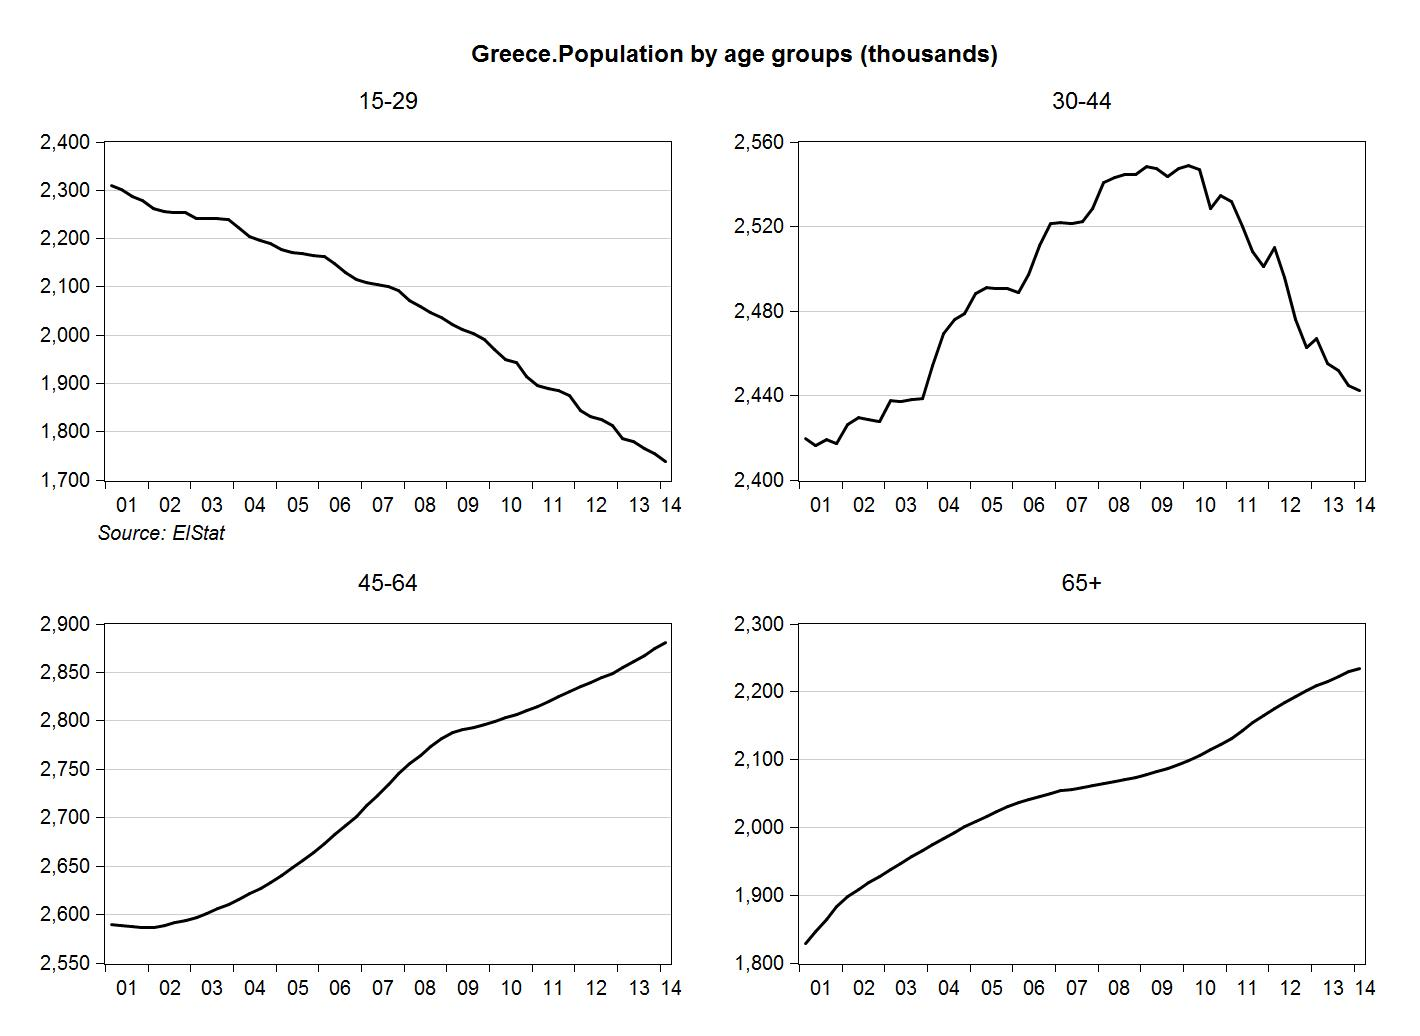 Greece. Population by age group